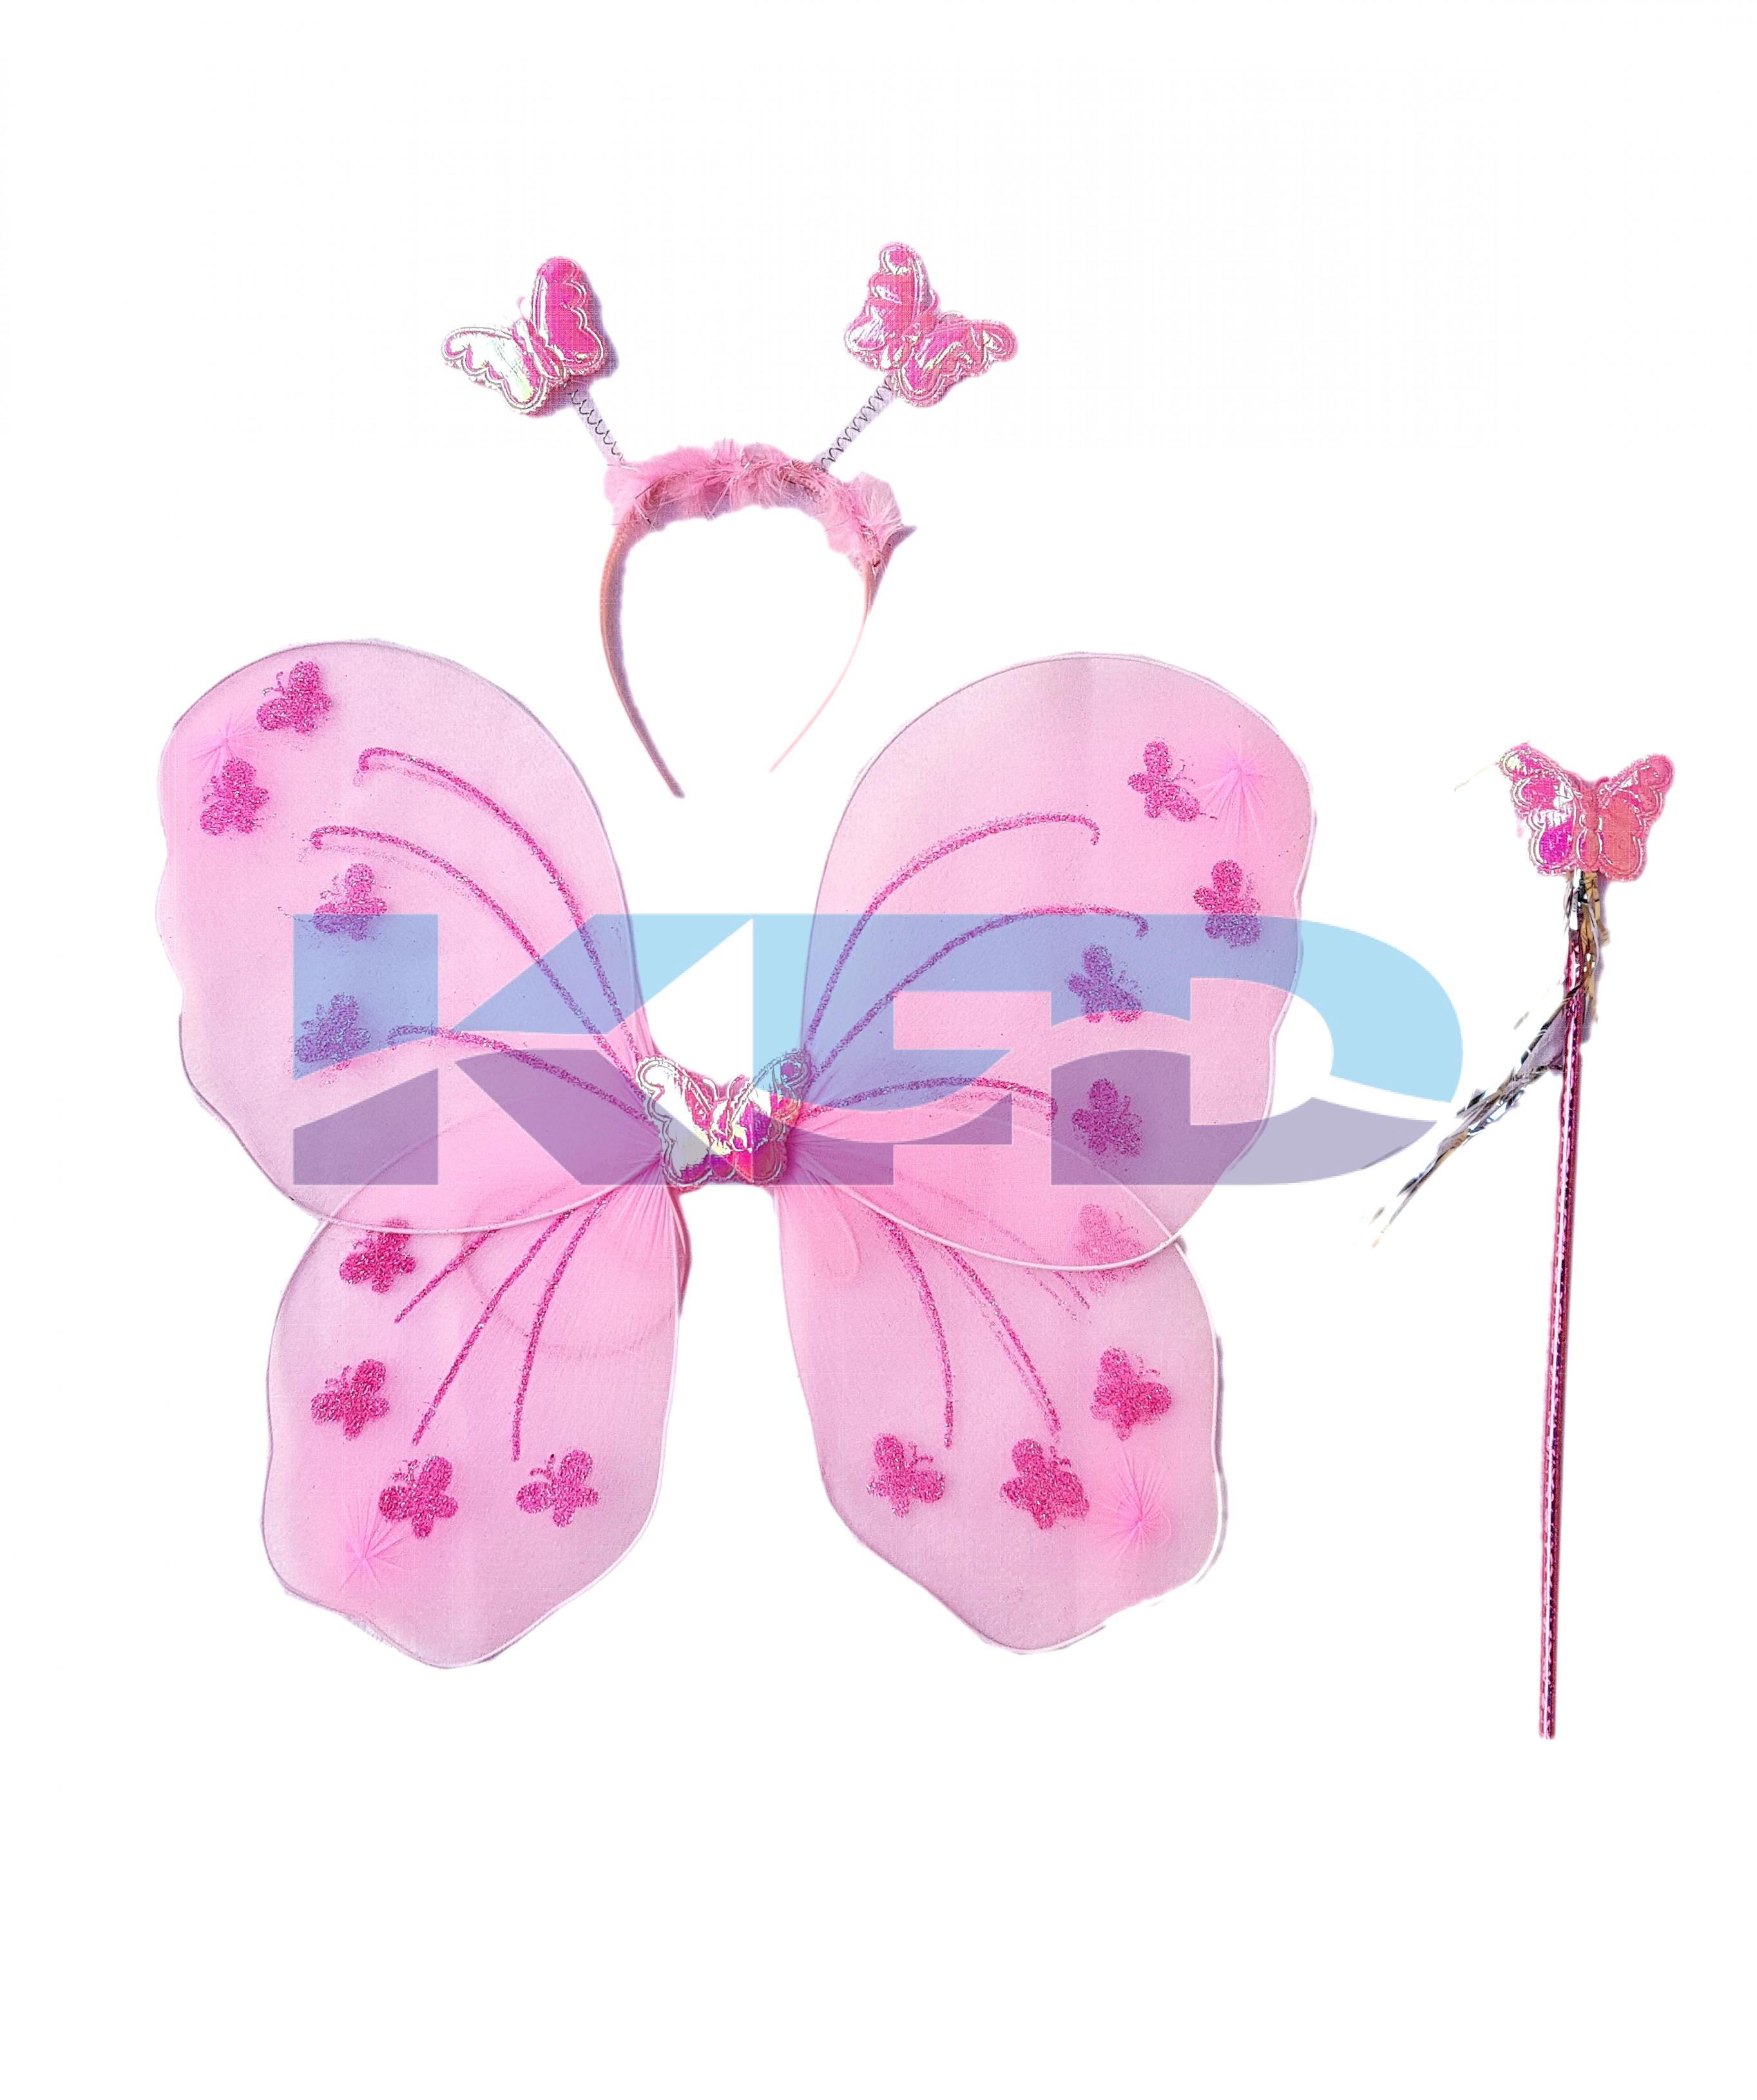 Butterfly wings in Pink color accessories for Kids,Boys and Girls